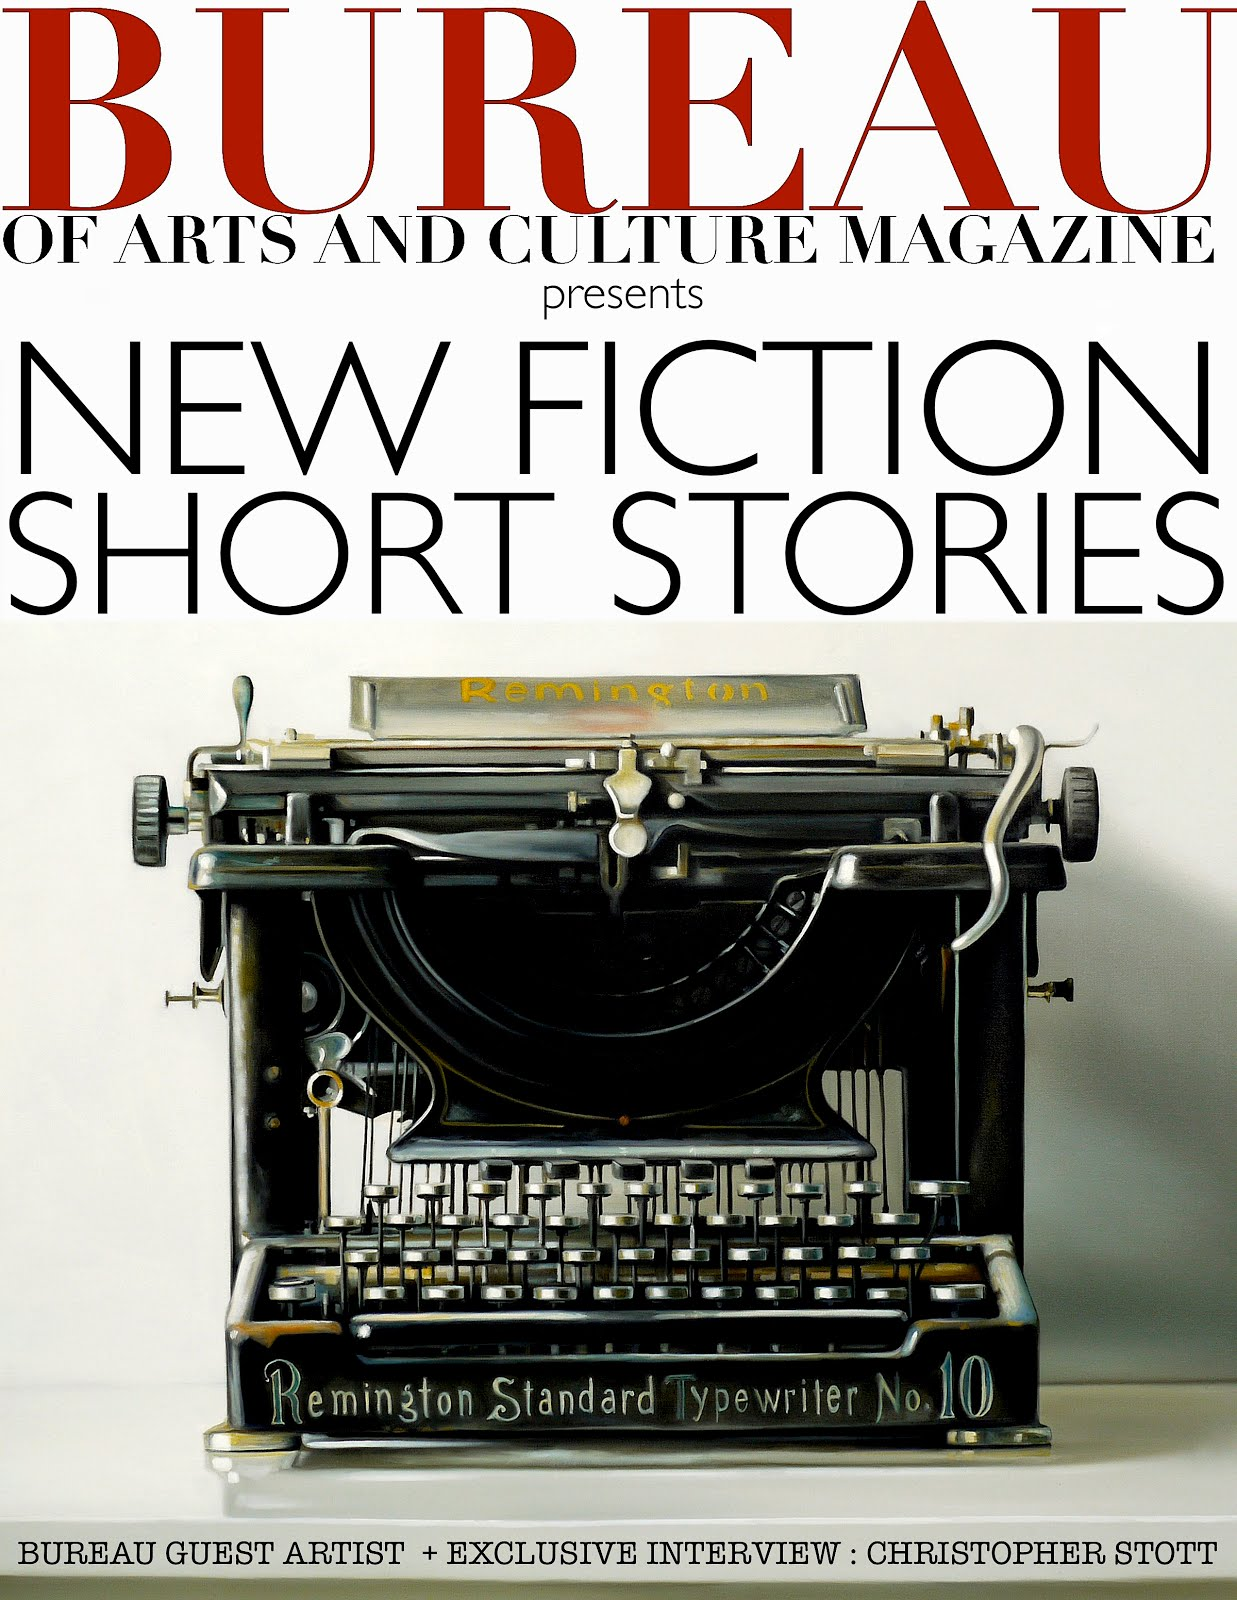 The NEW SHORT STORY SERIES